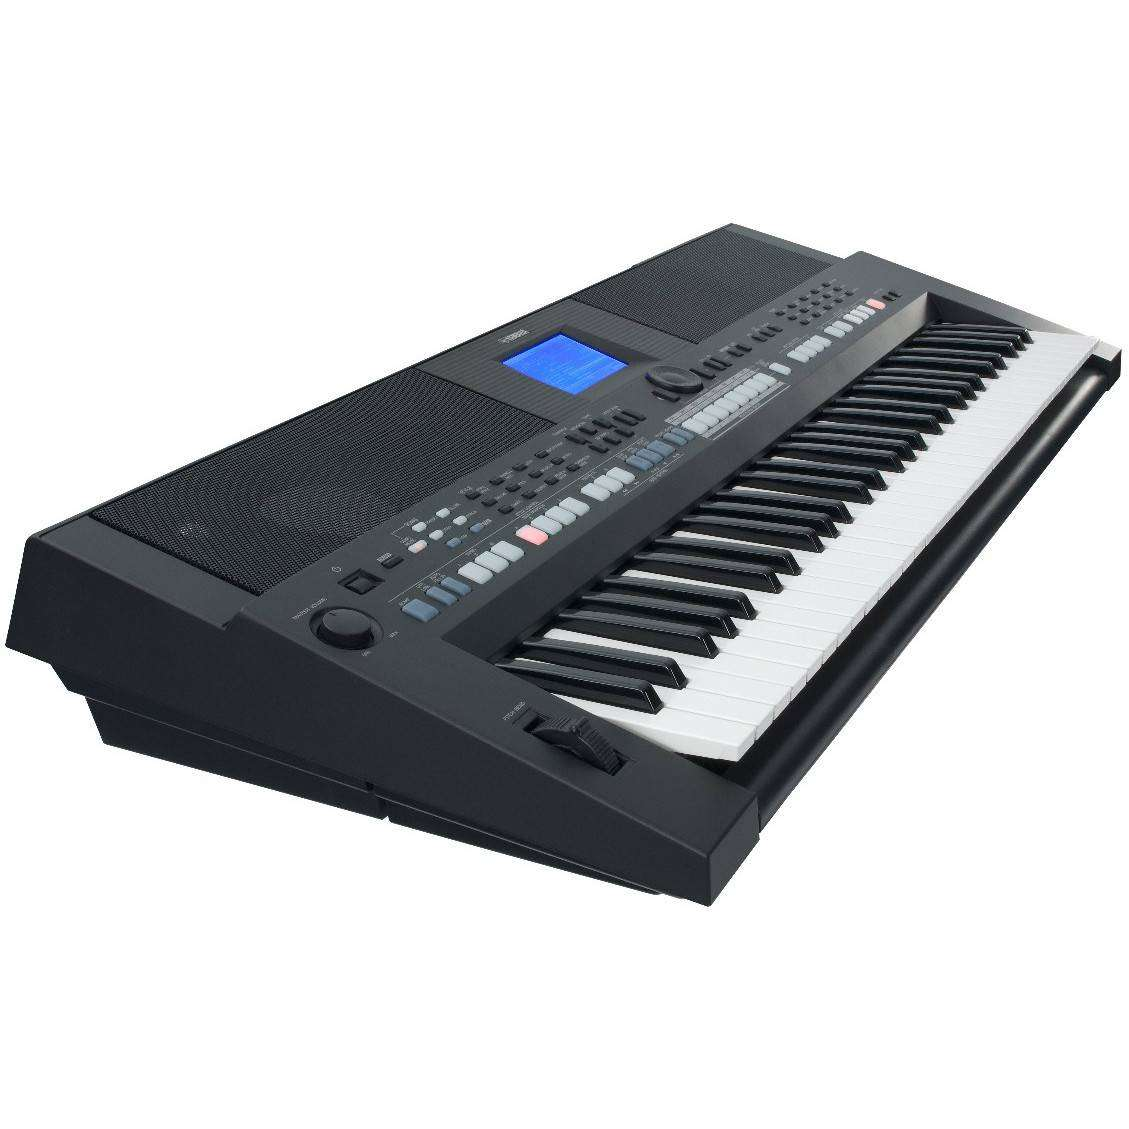 Yamaha PSR S650 - синтез. с автоак. 61кл/64гол. полиф/2х12Вт/865тембр/181стил/Pitch Band/USB/c БП